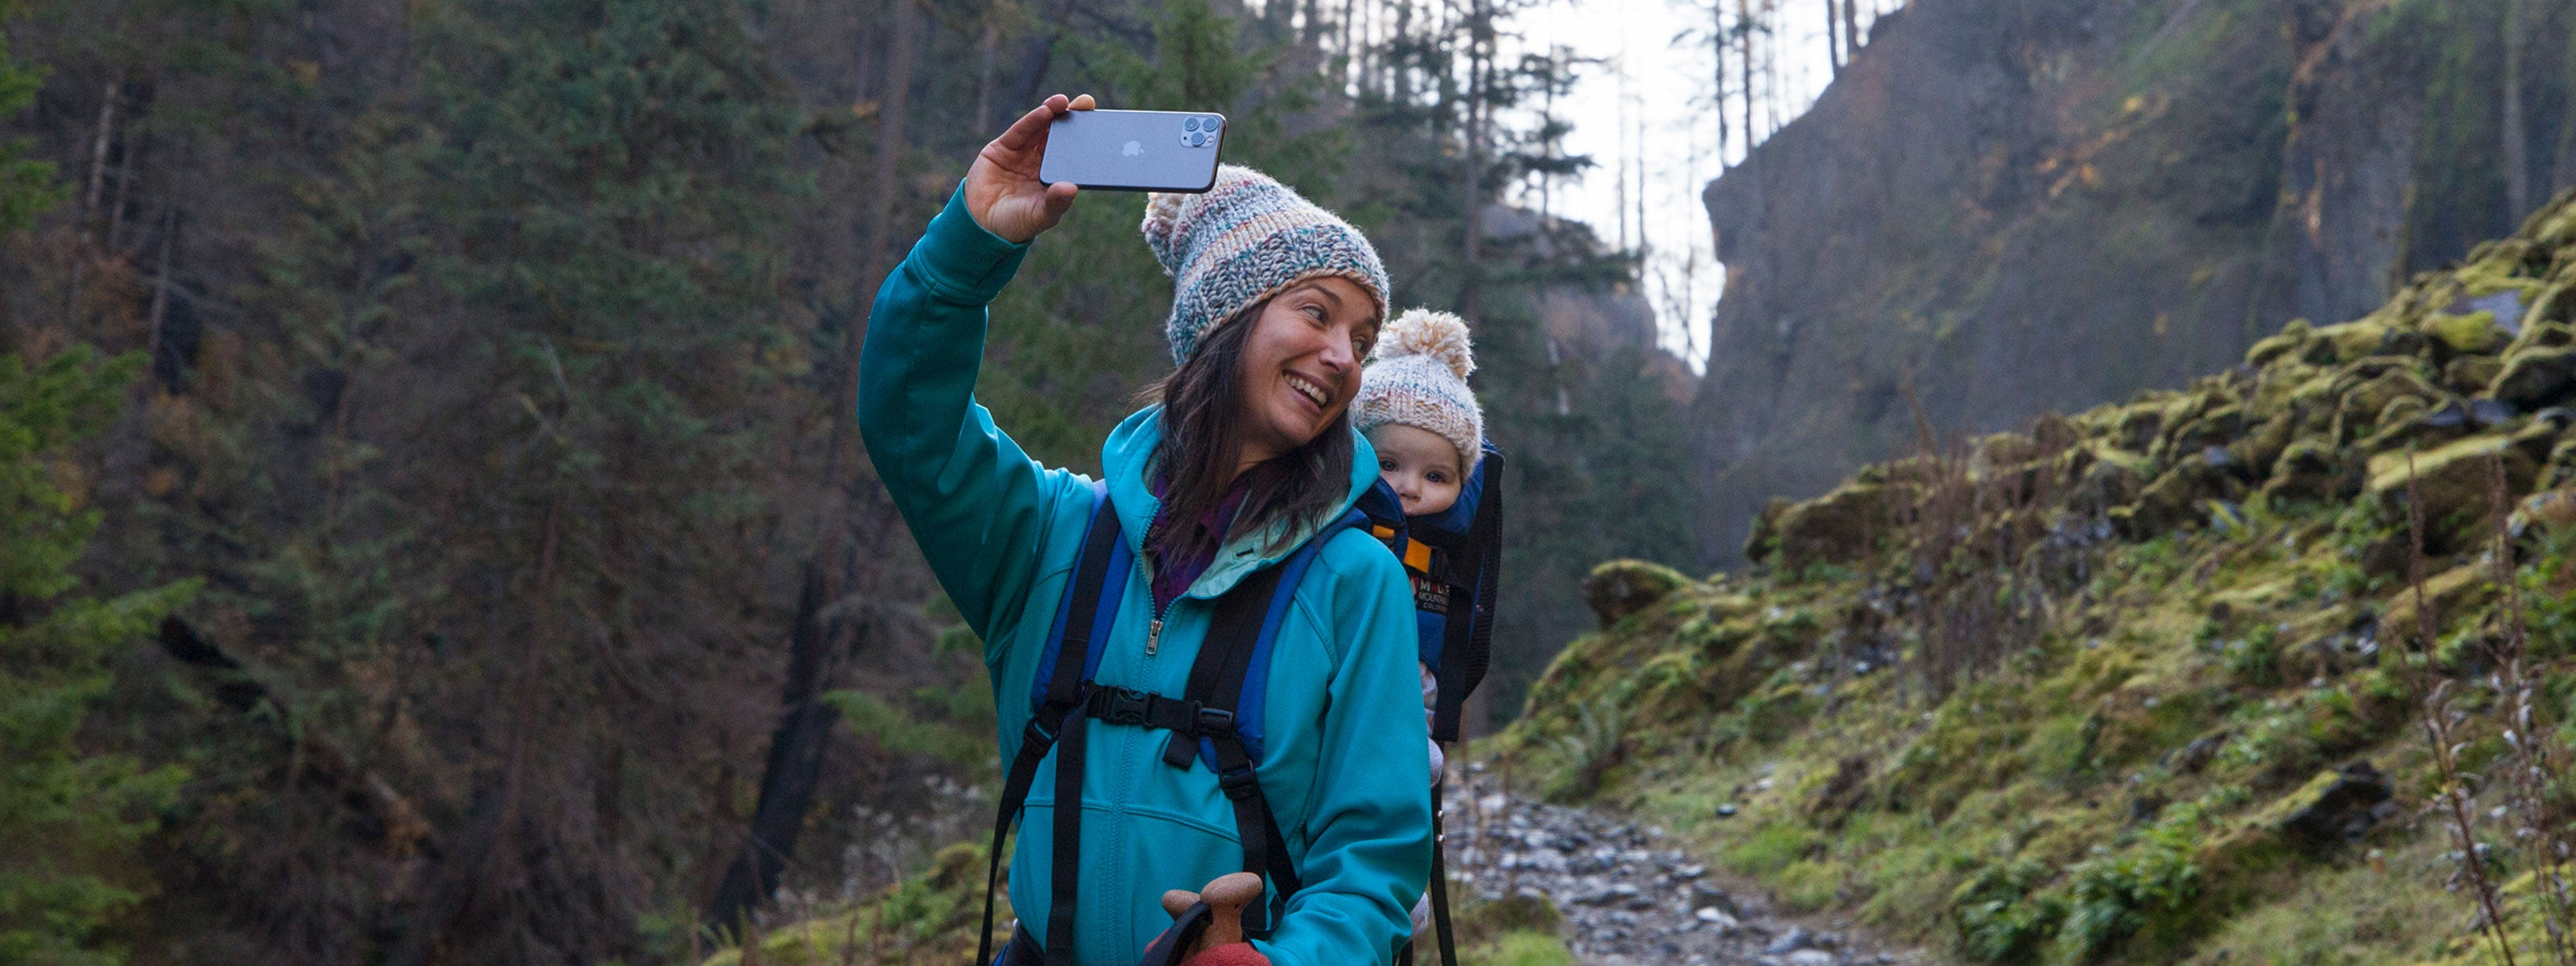 Woman hiking with her baby